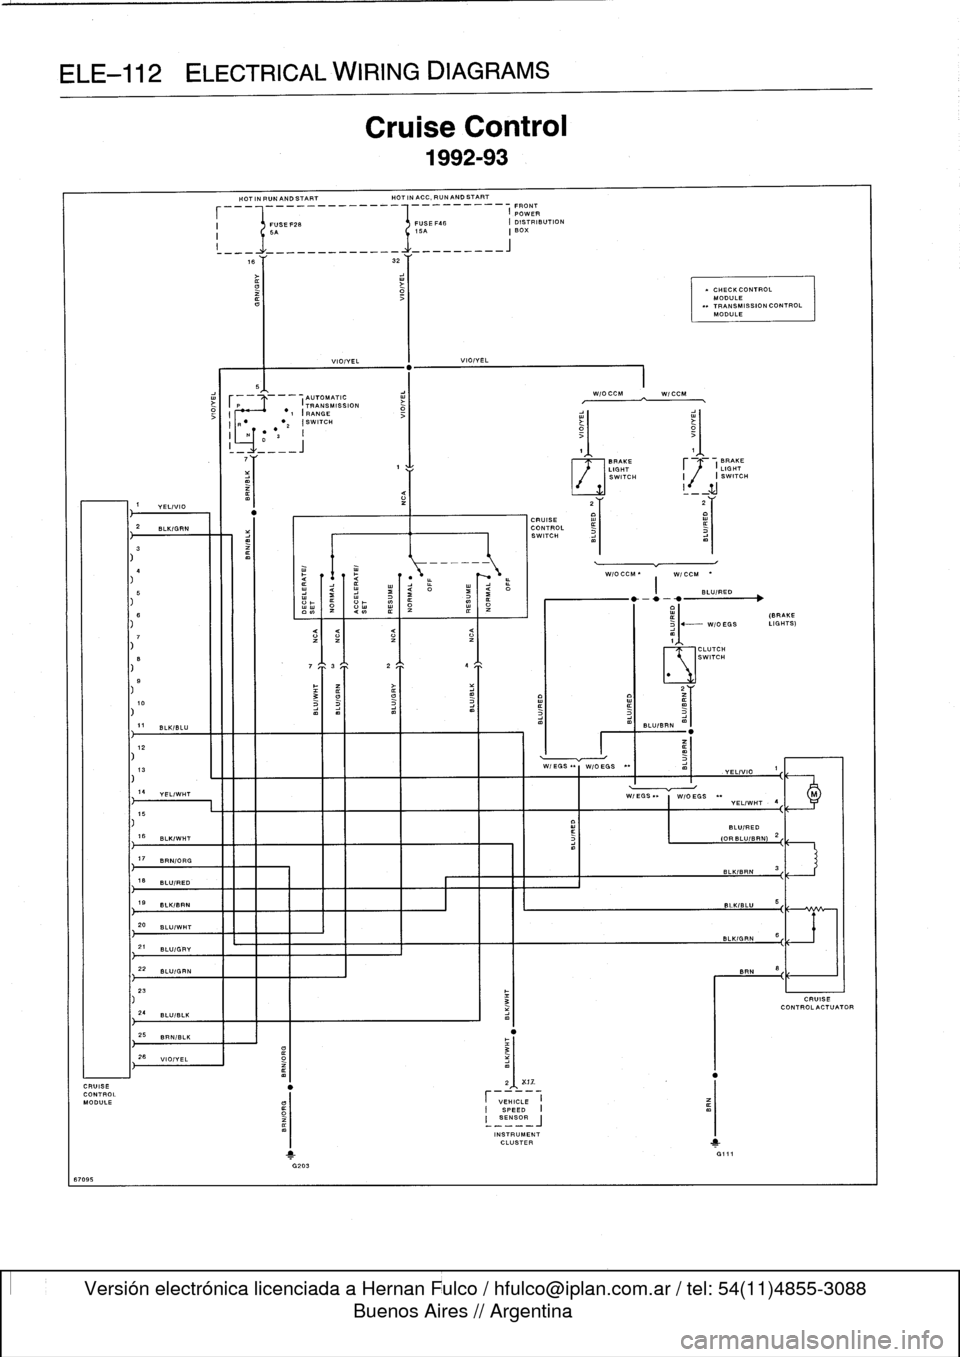 w960_2800 595 bmw 328i 1994 e36 workshop manual ew 36 wiring diagram at soozxer.org